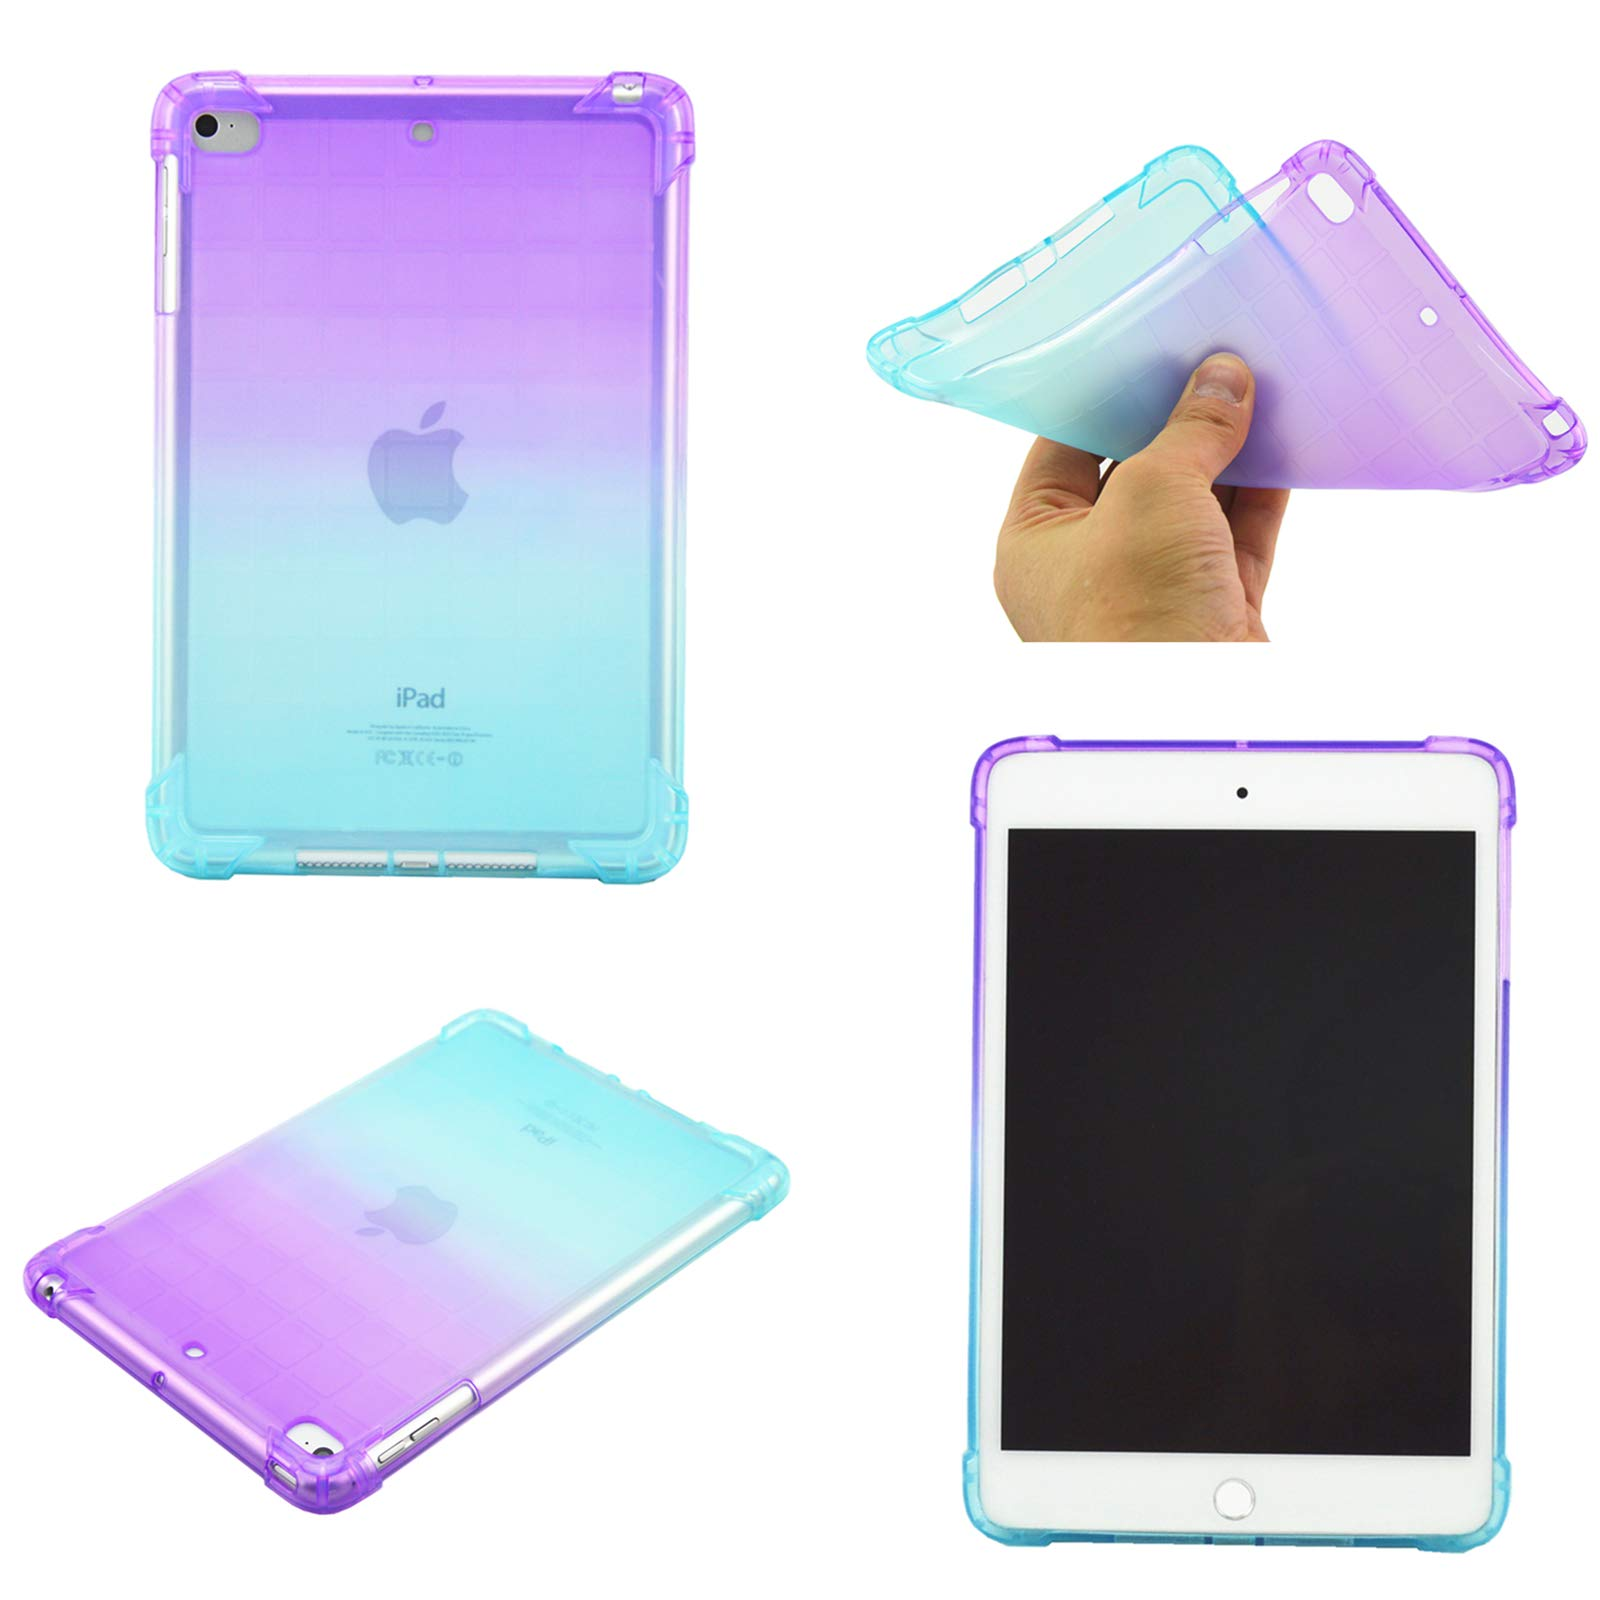 iPad Mini 5 Case Mini 1 2 3 4 Cover, MonsDirect Soft TPU Transparent Case Shockproof Rubber Impact Resistant Back Cover for iPad Mini 1 2 3 4 5, Purple and Apple Green